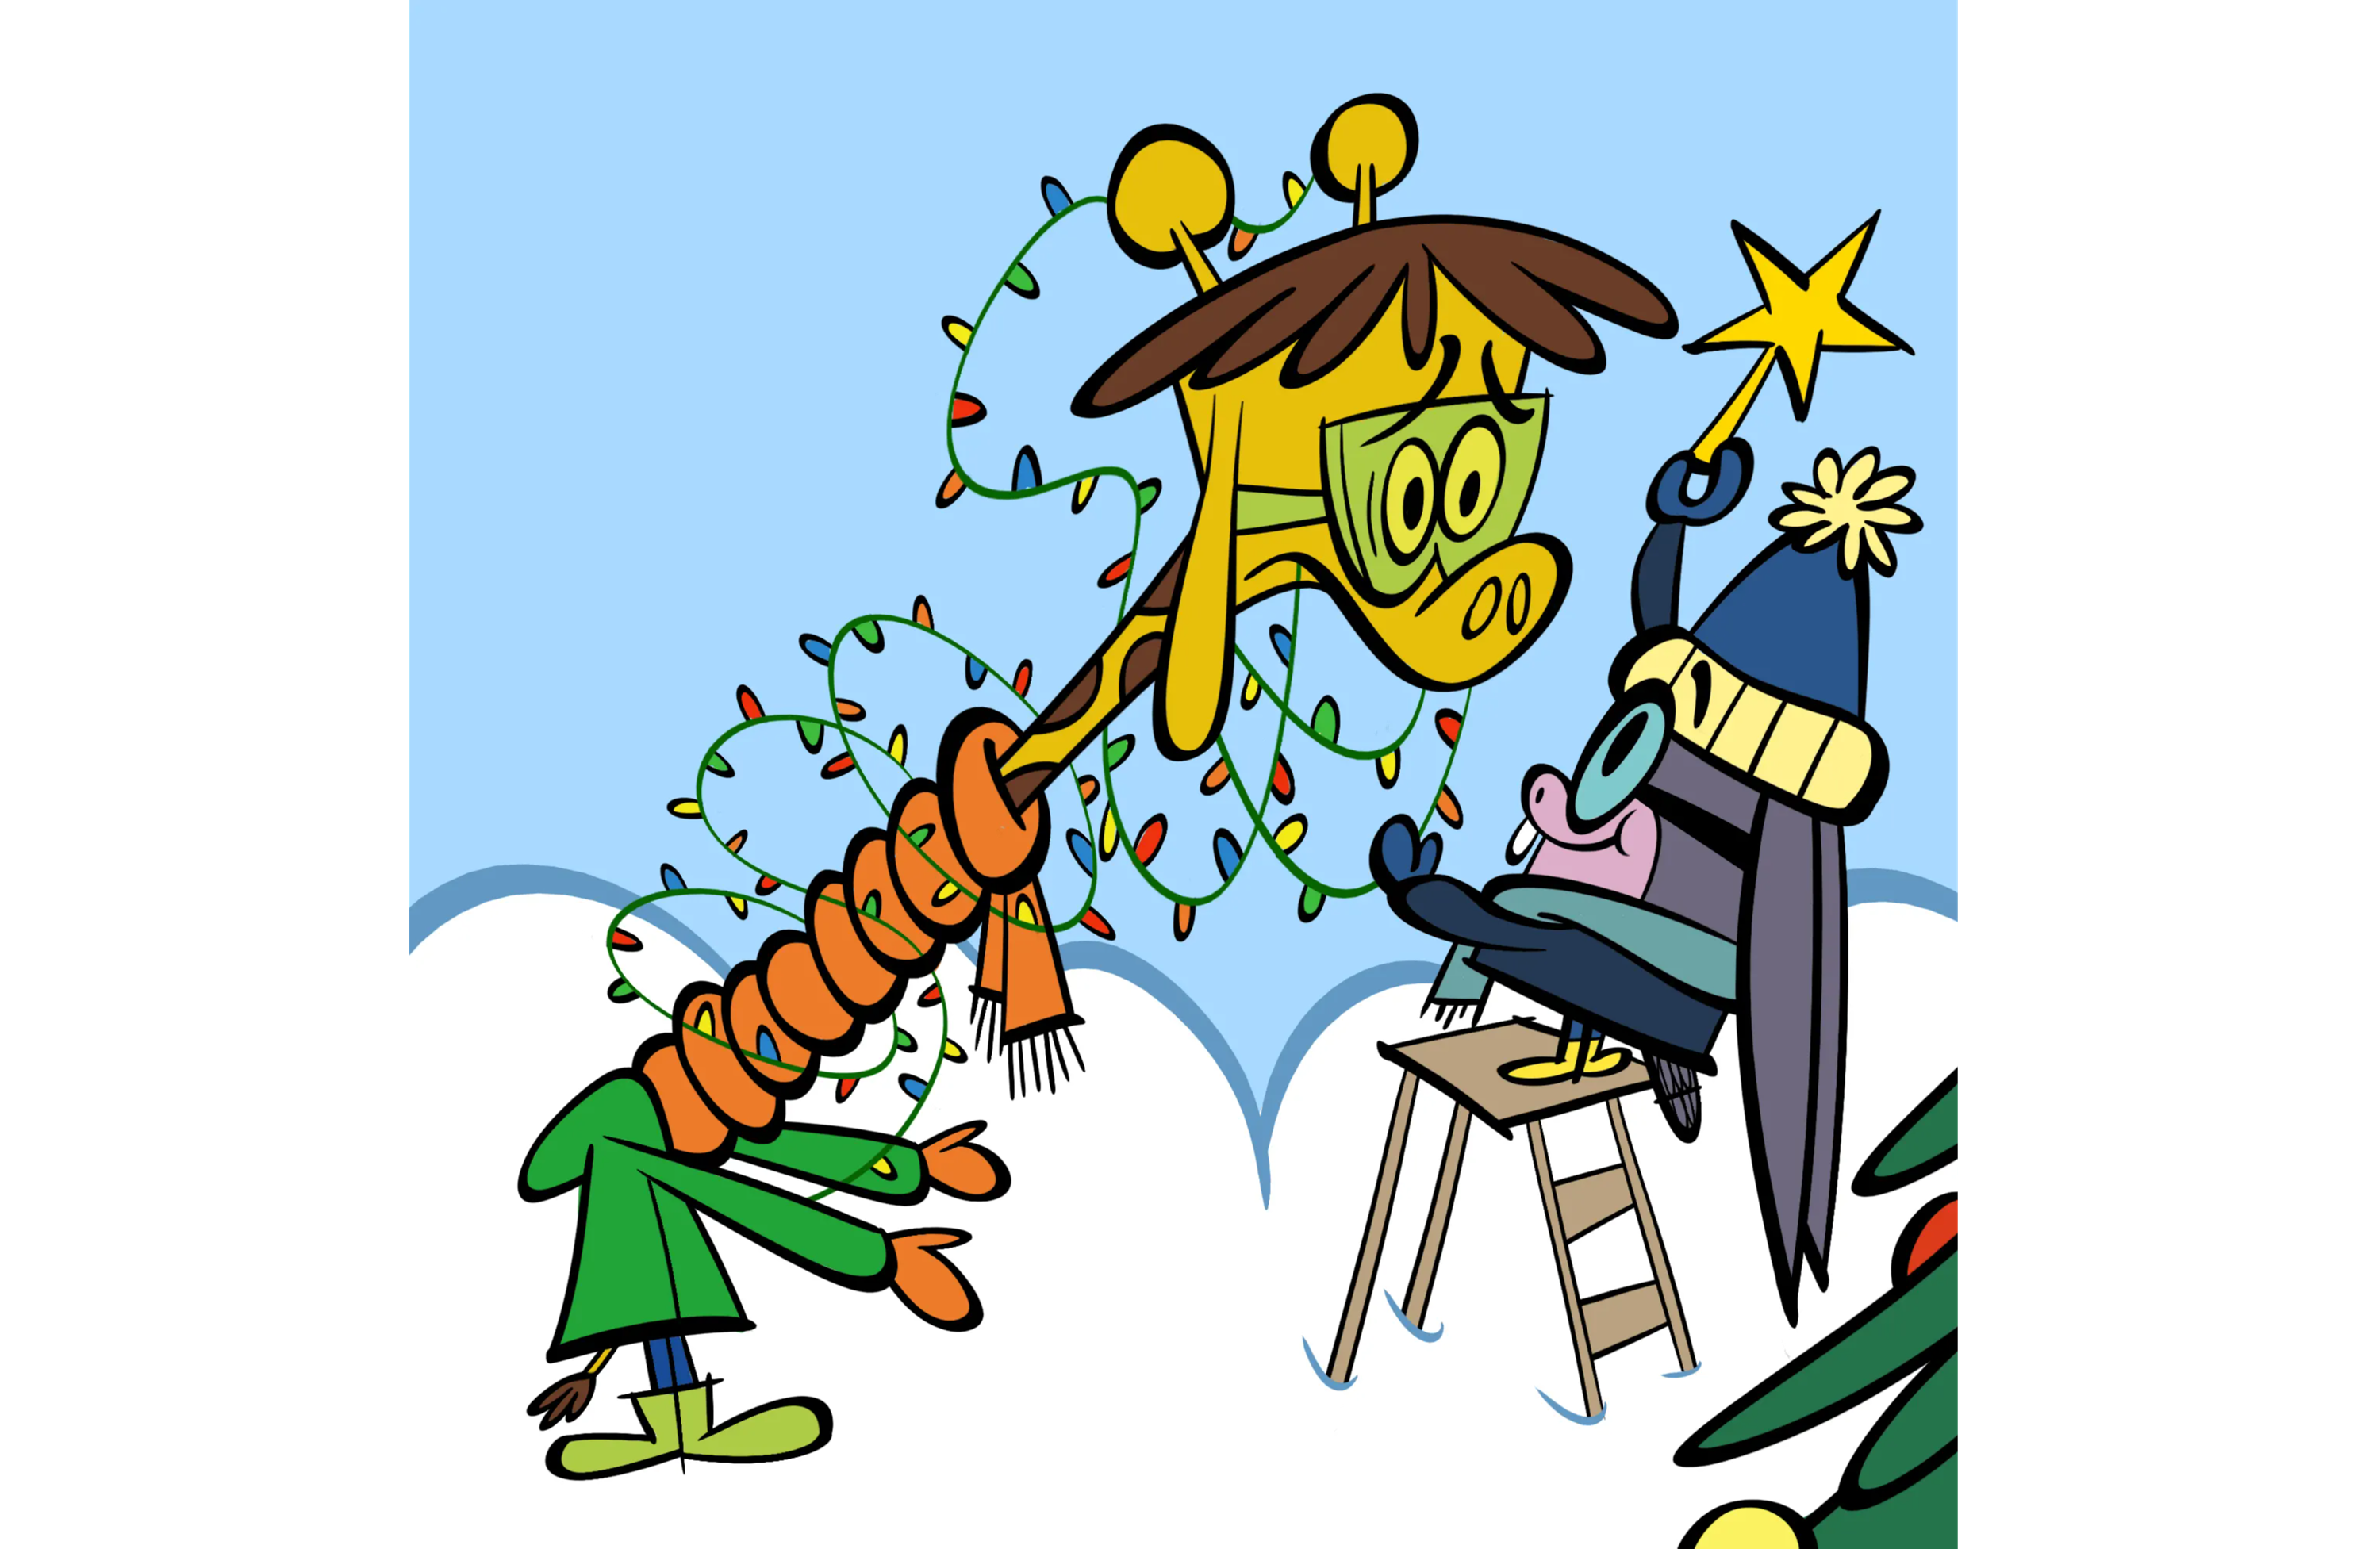 illustrated character decorated as a tree